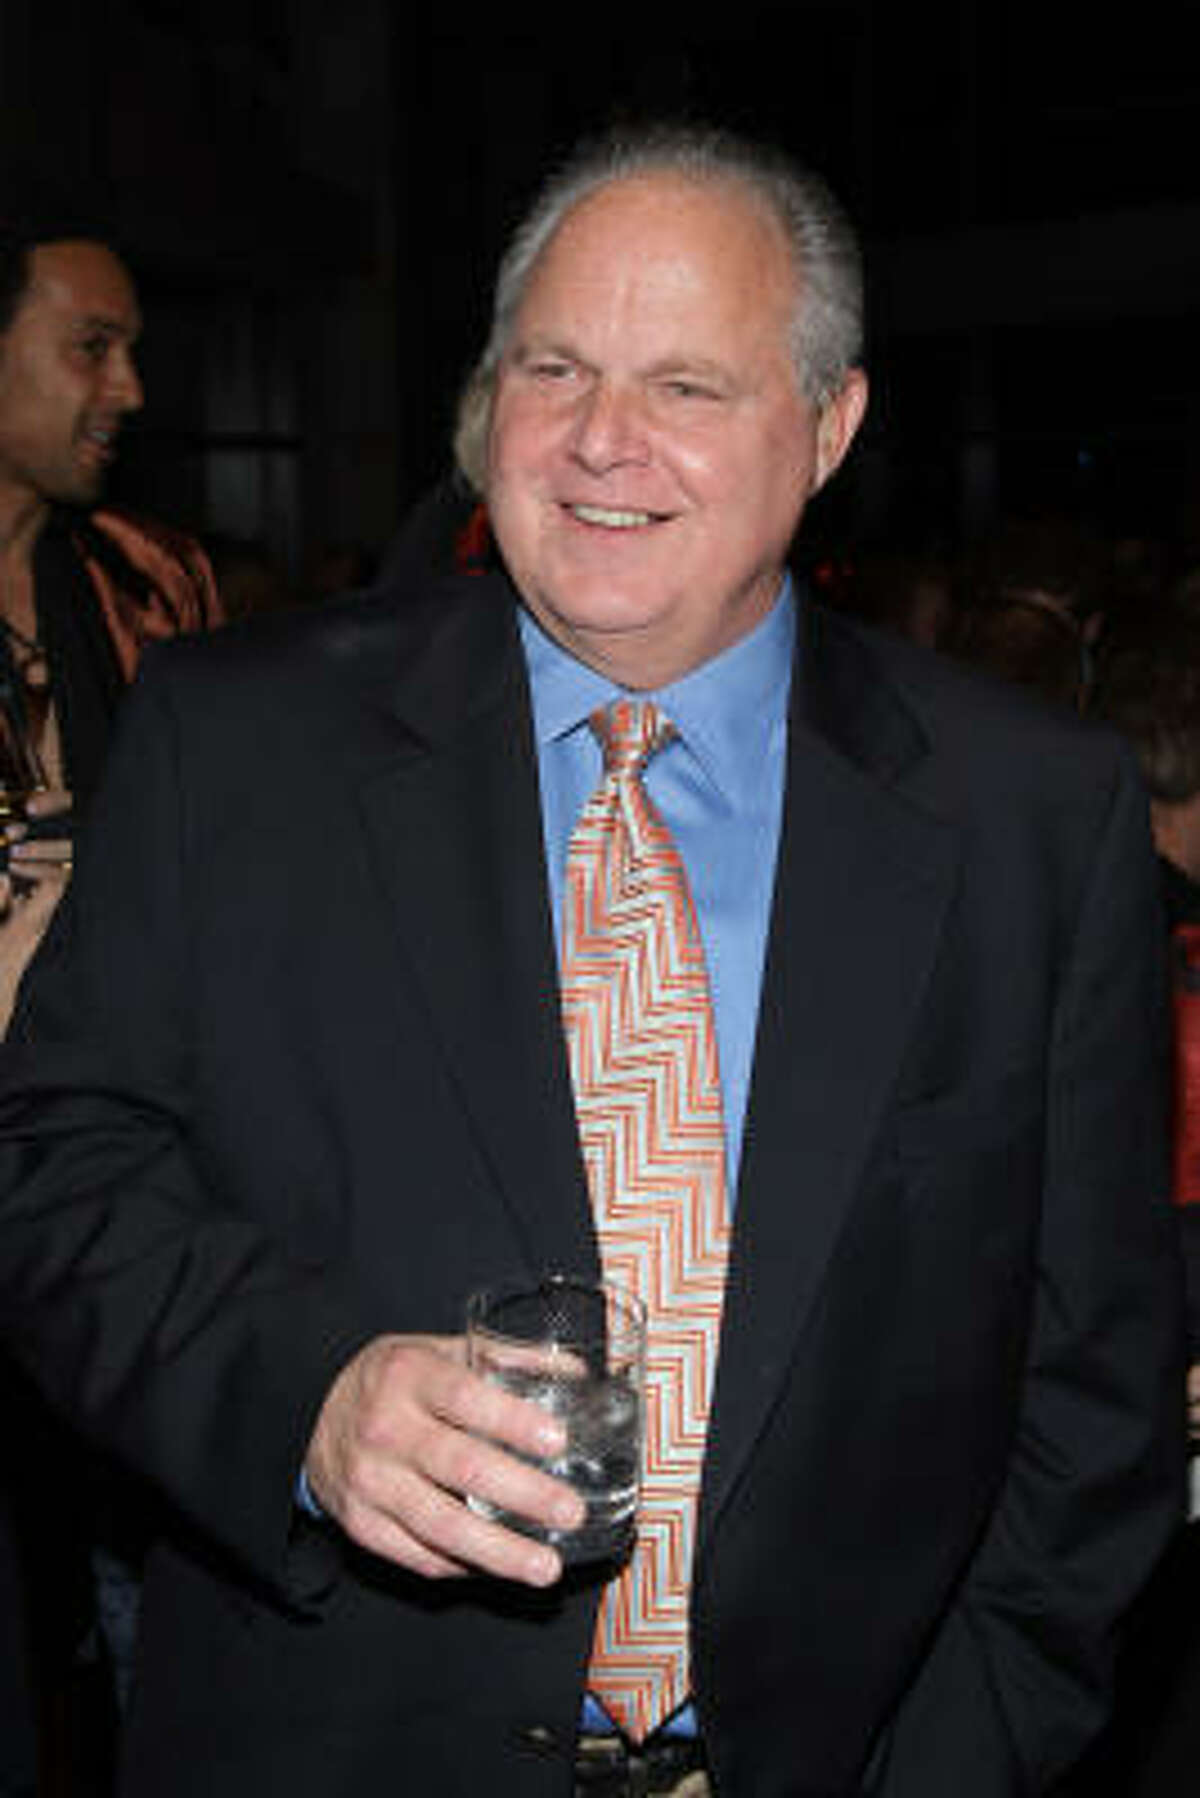 No. 23 Rush Limbaugh $64 M